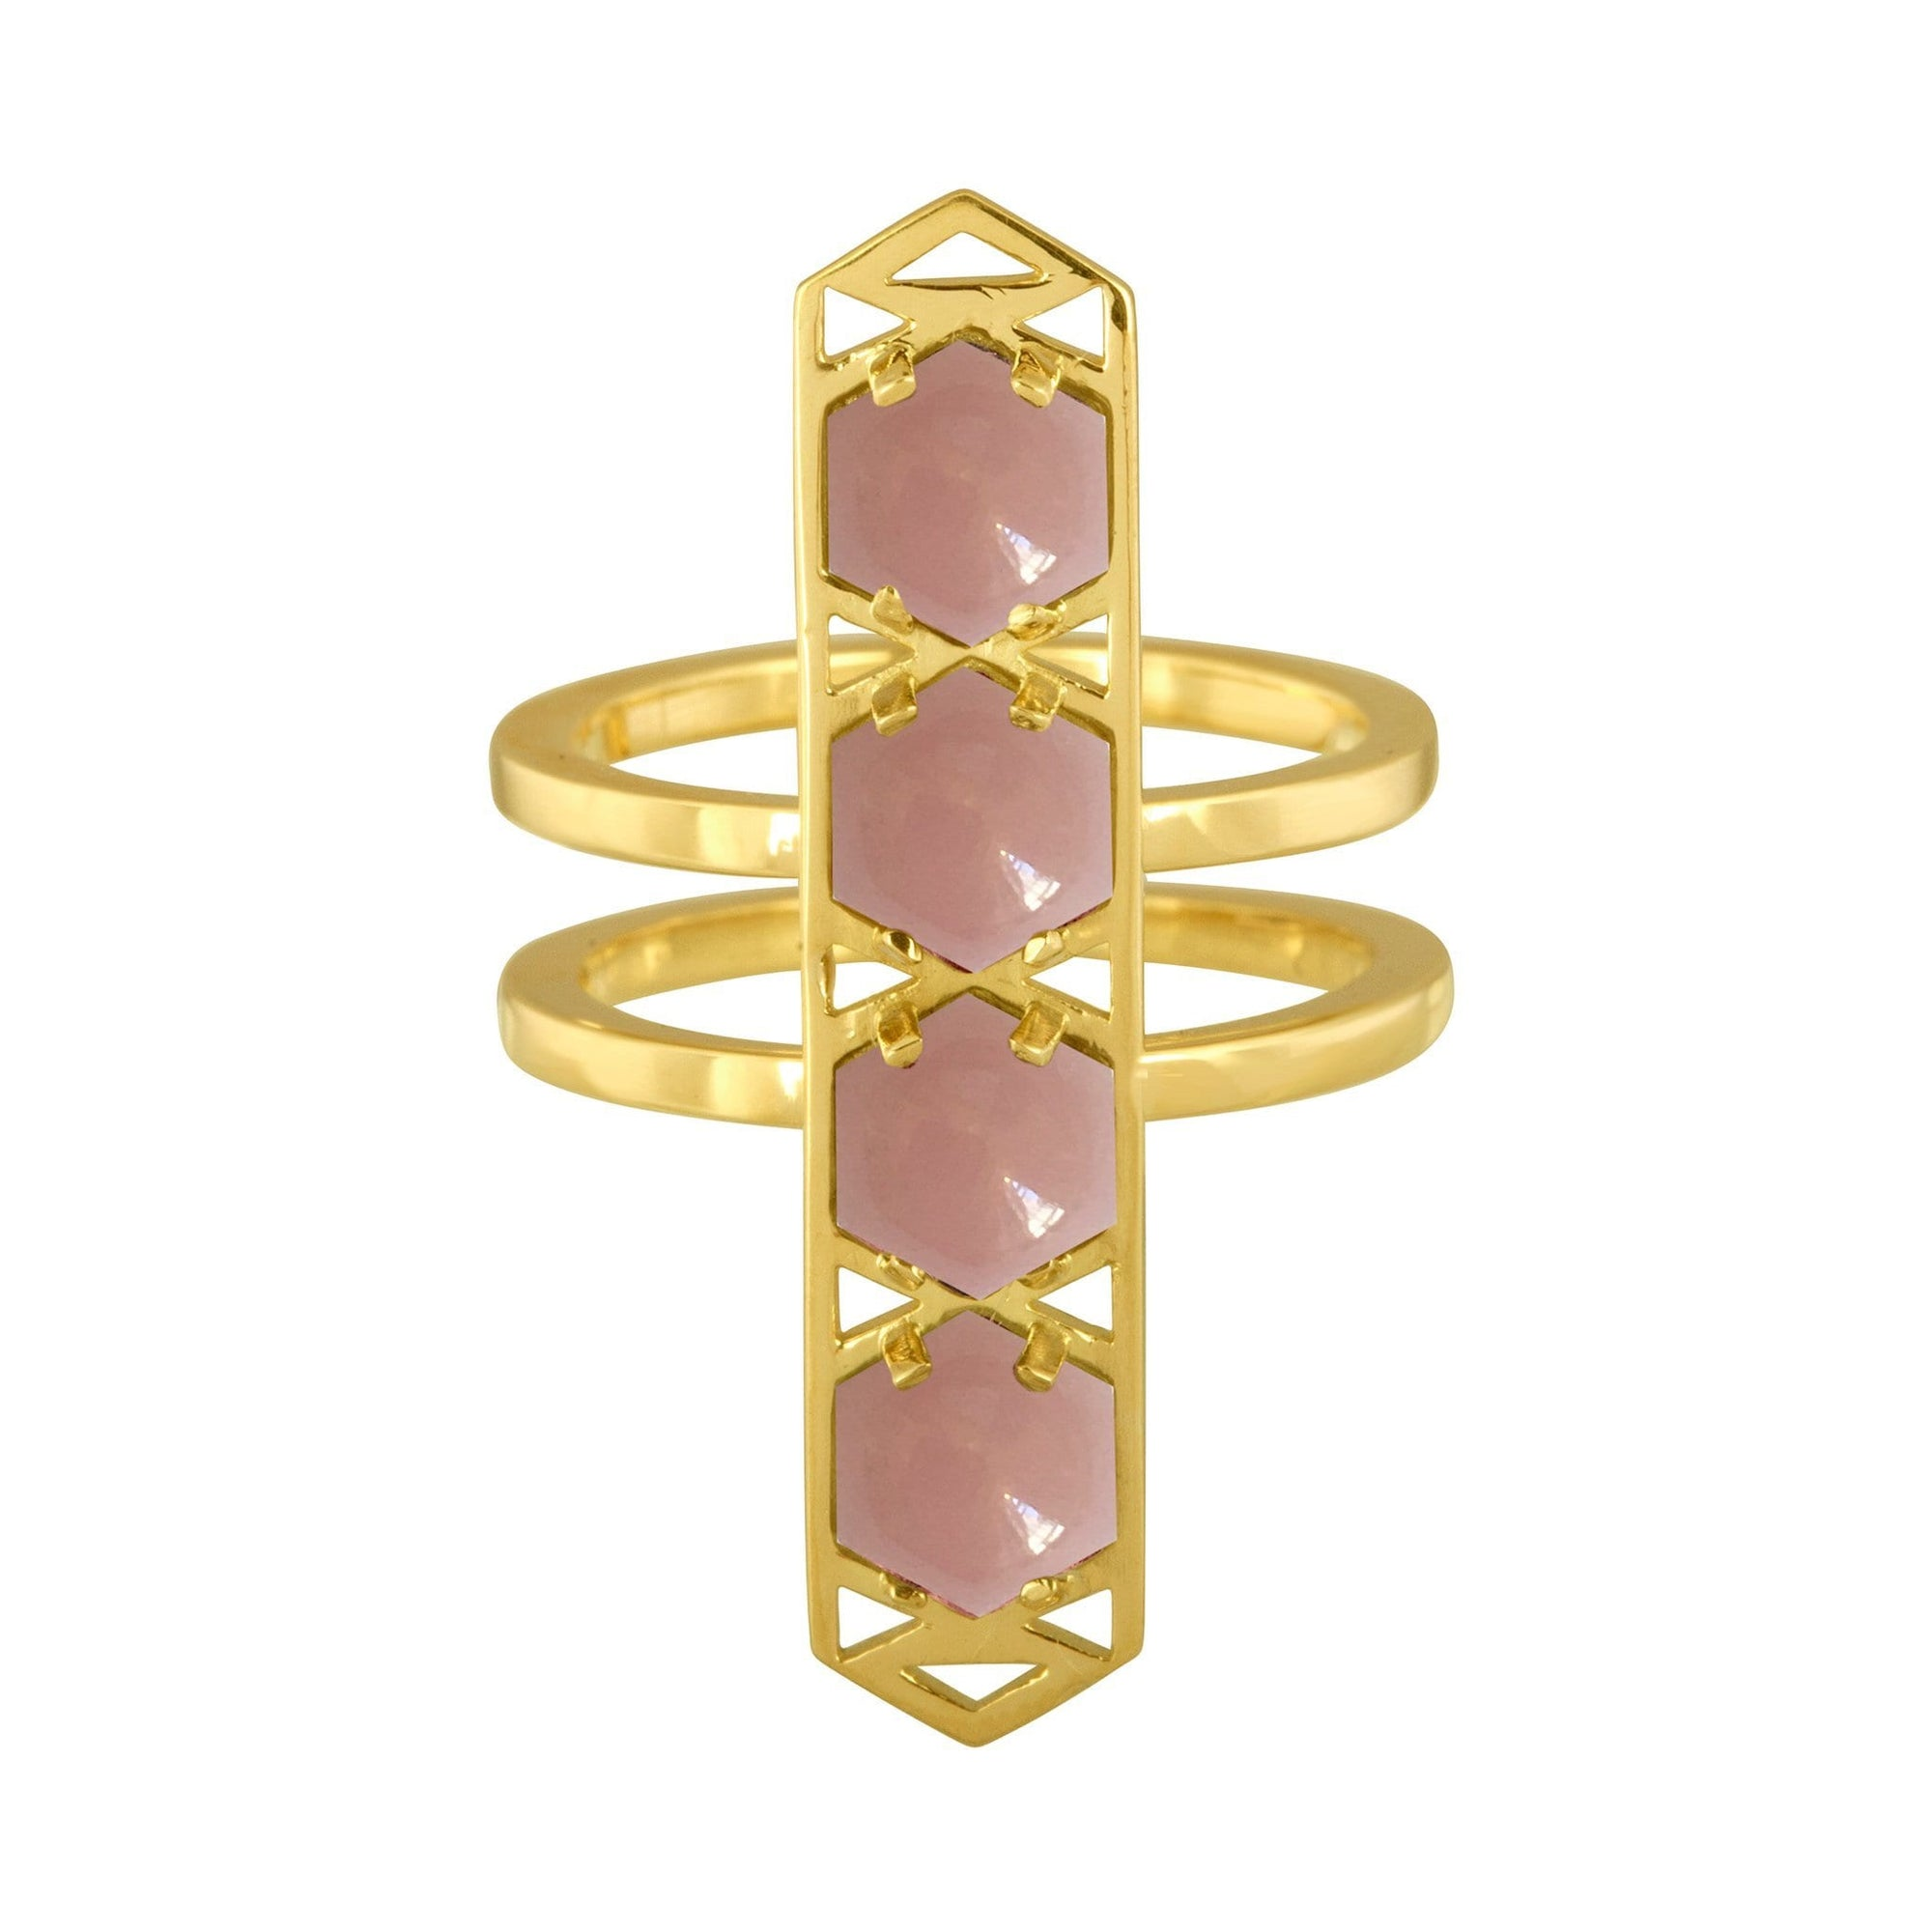 Stretto Ring: 18k Gold, Hexagon Cabachon Guava Quart